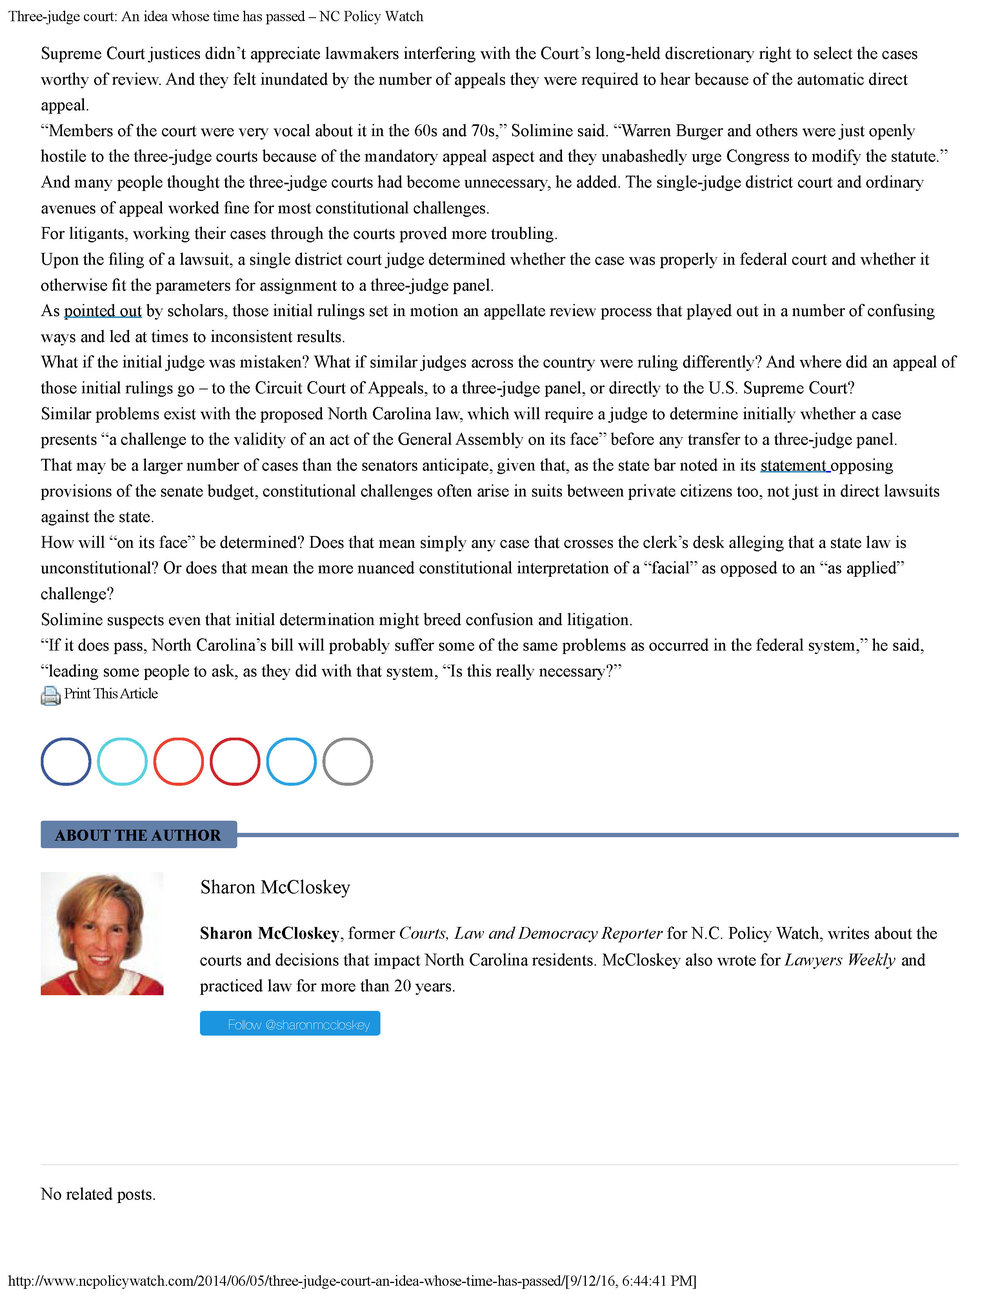 Sharon McCloskey - Three-judge court- An idea whose time has passed – NC Policy Watch_Page_3.jpg